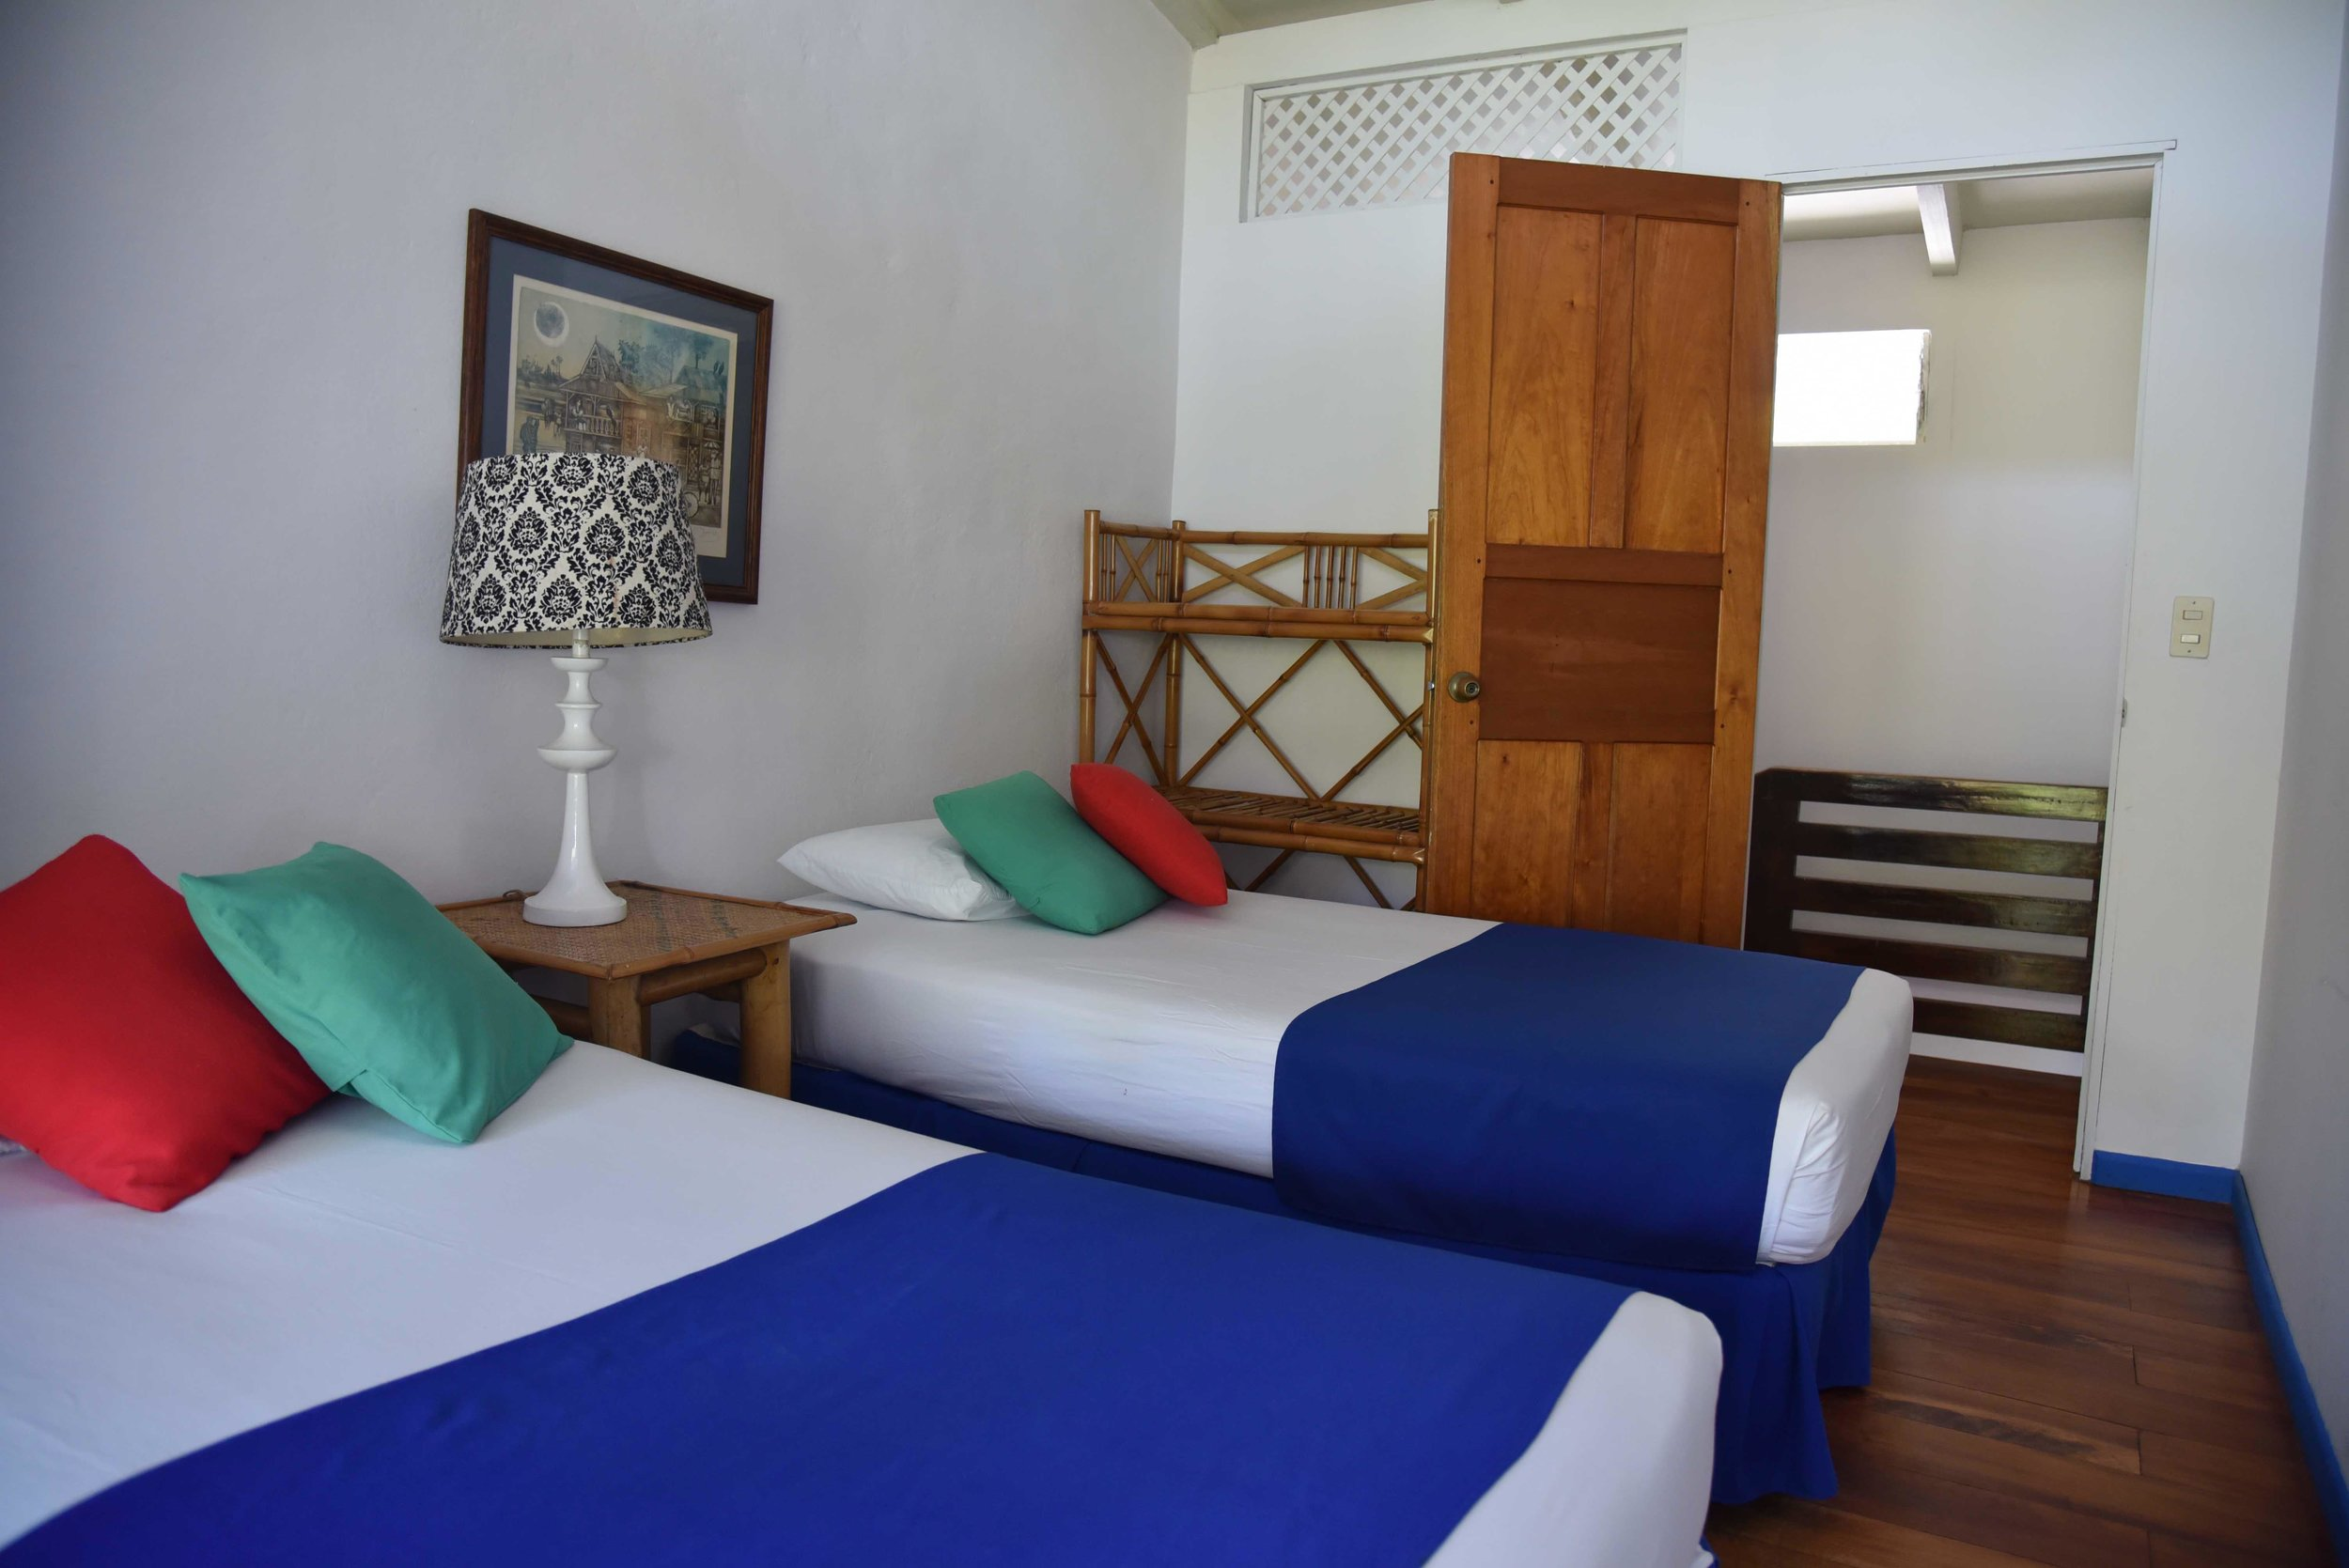 VILLAS DEL CARIBE COCLES PUERTO VIEJO  BREATHWORK YOGA RETREAT  MEG WILLIAMS  LISA D. (C)-17.jpg